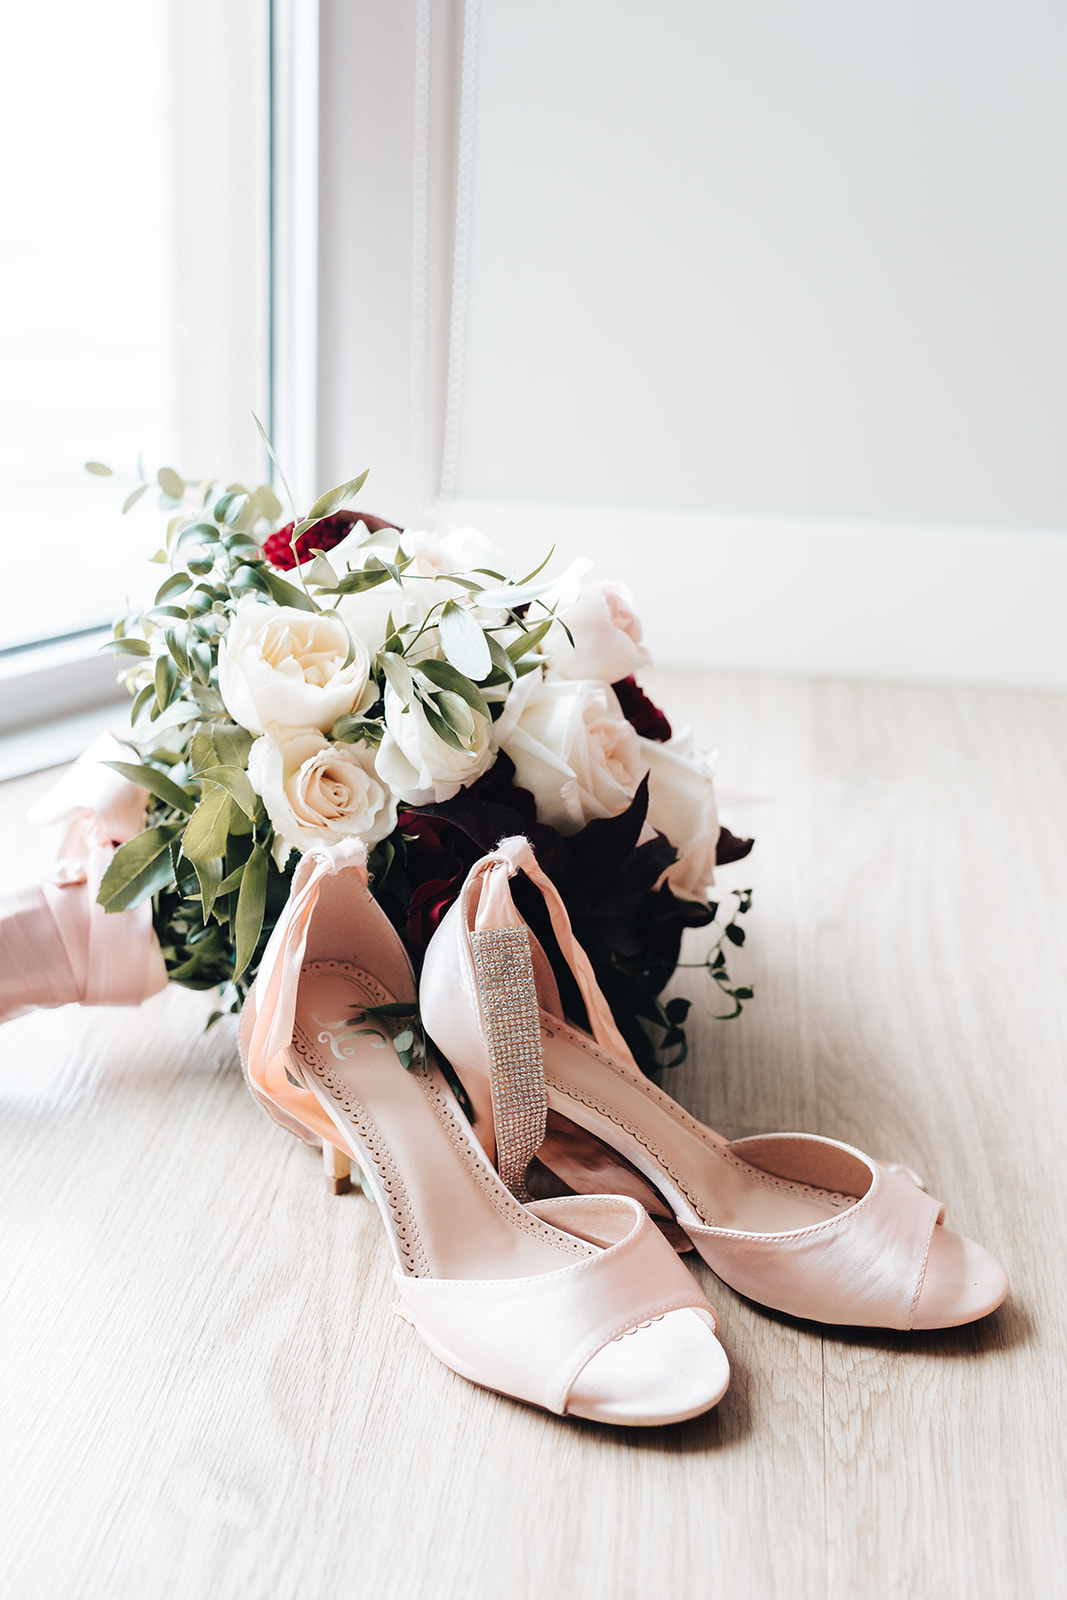 Bride's shoes and bouquet for West Bay Beach wedding